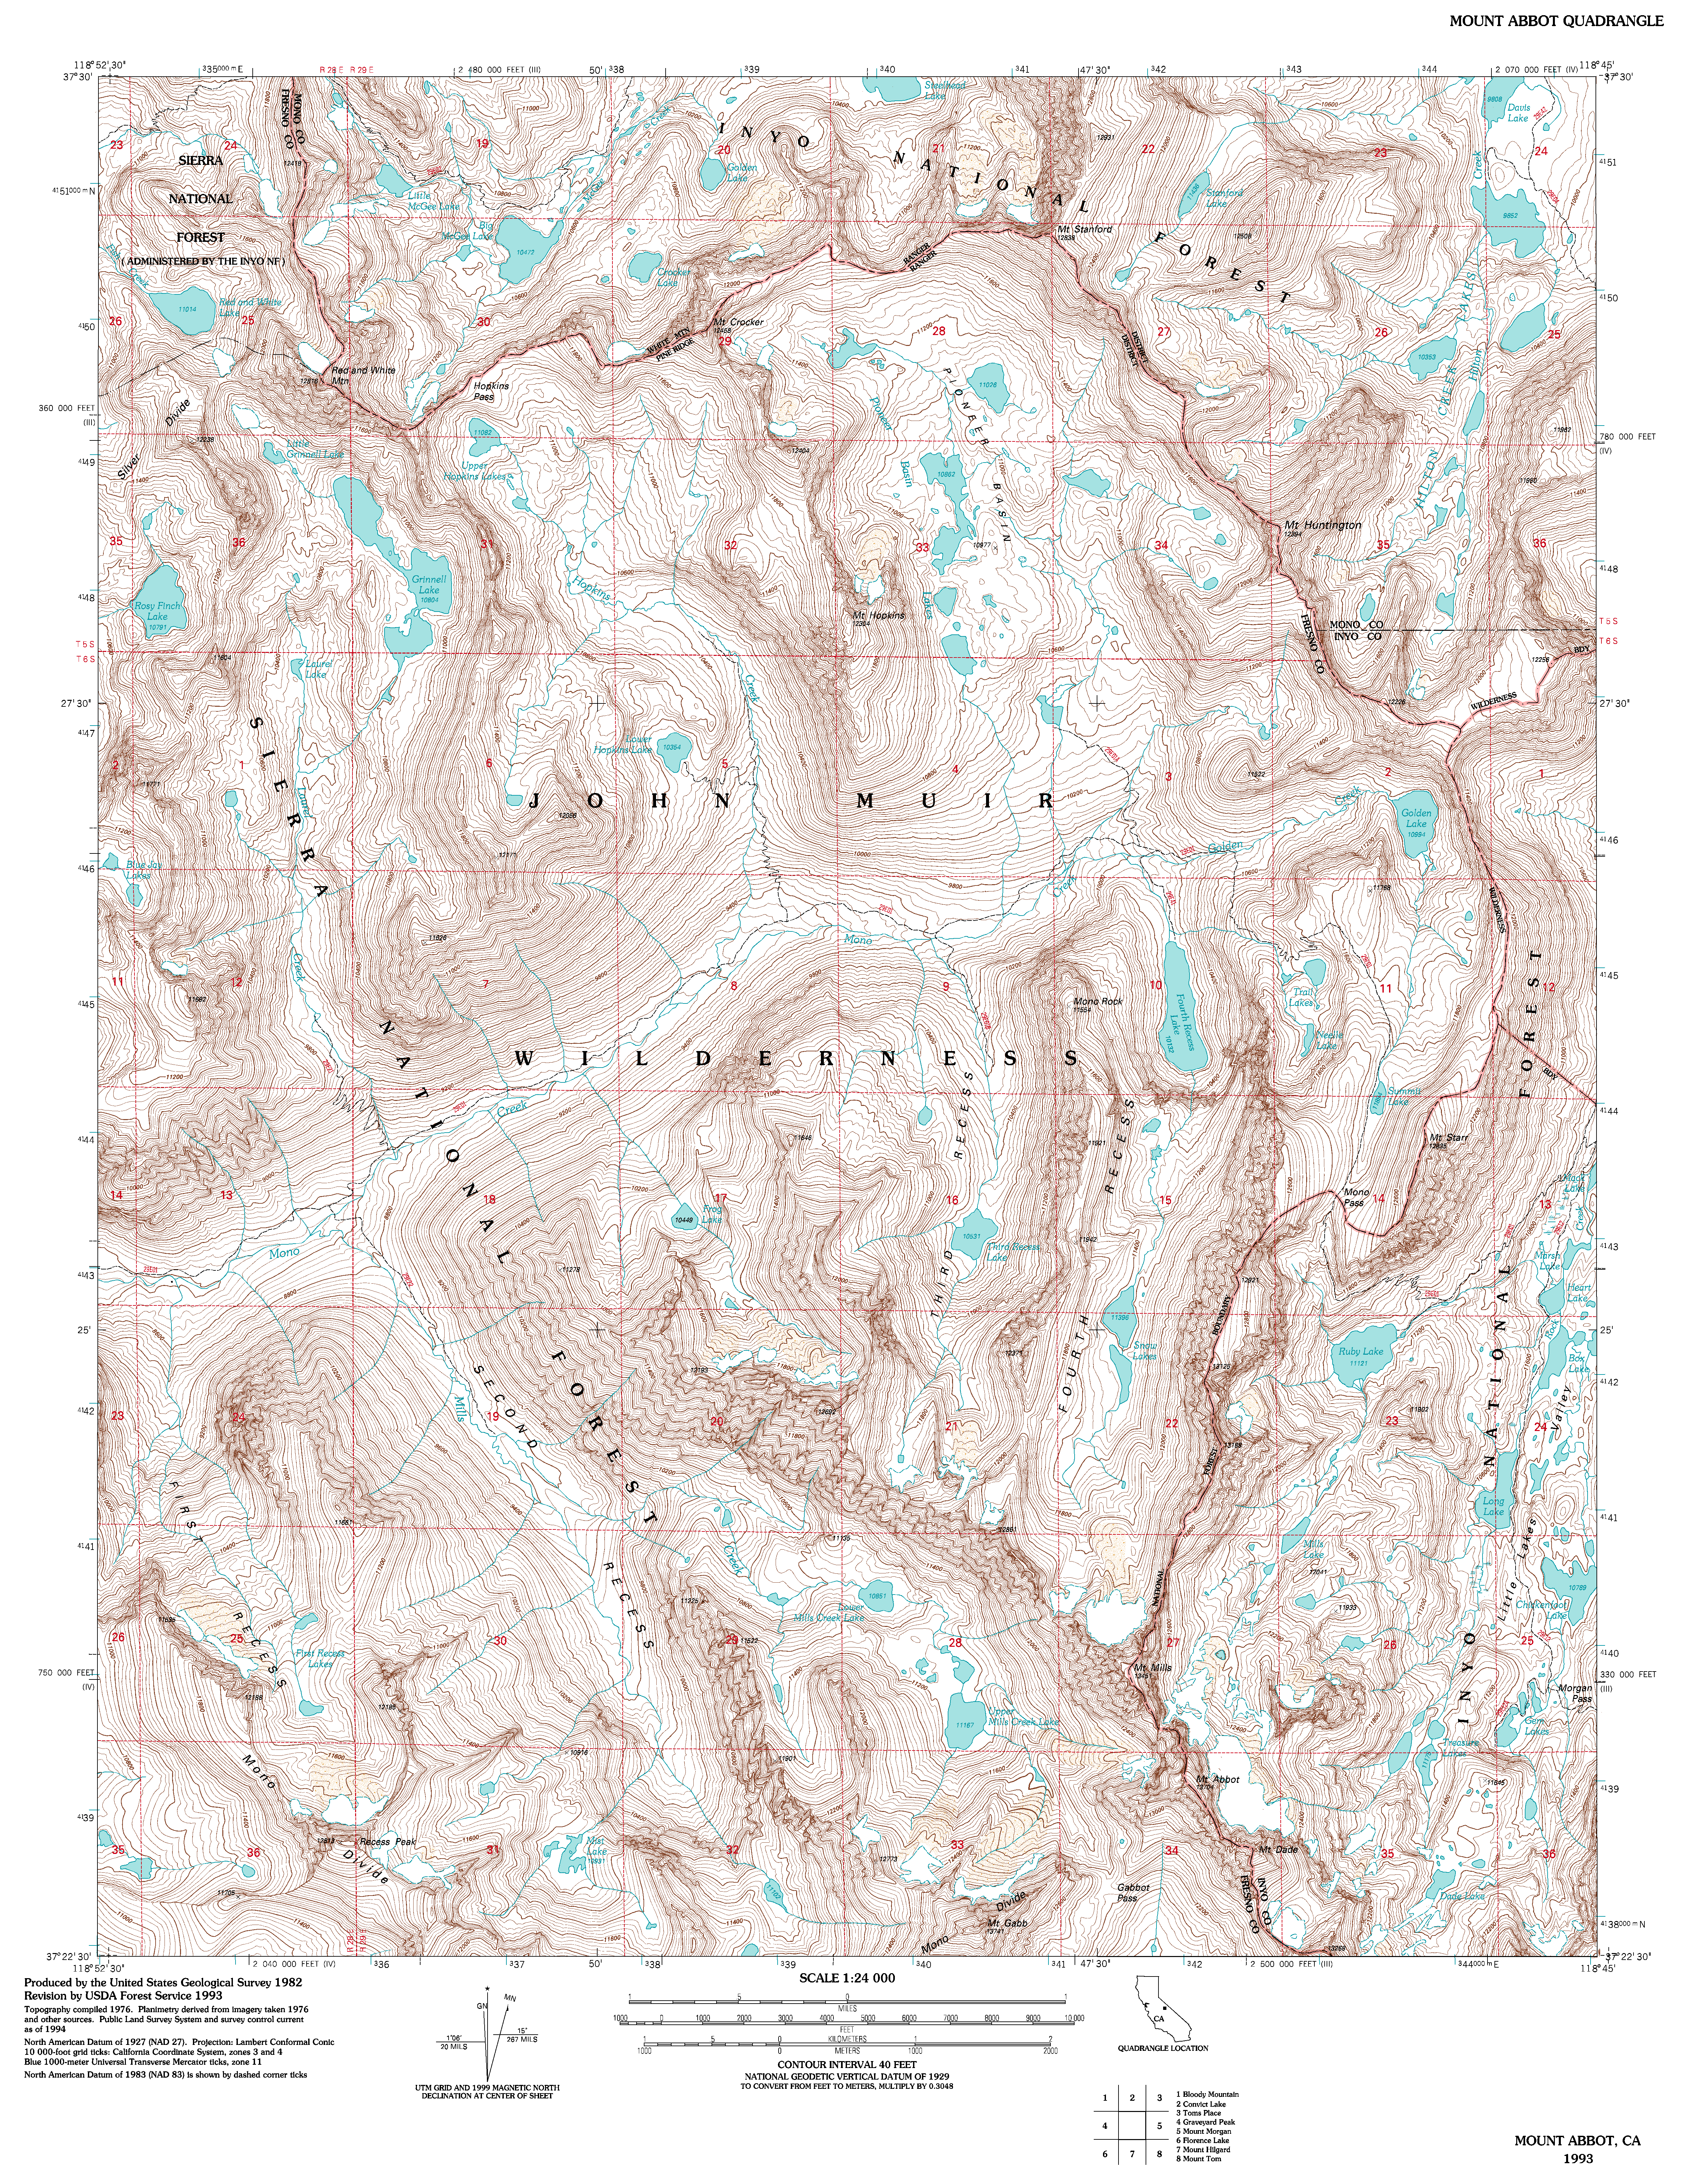 37221845mountabbot Png 20 Aug 2010 20 01 2 2m Map Or Picture Portable Network Graphics File